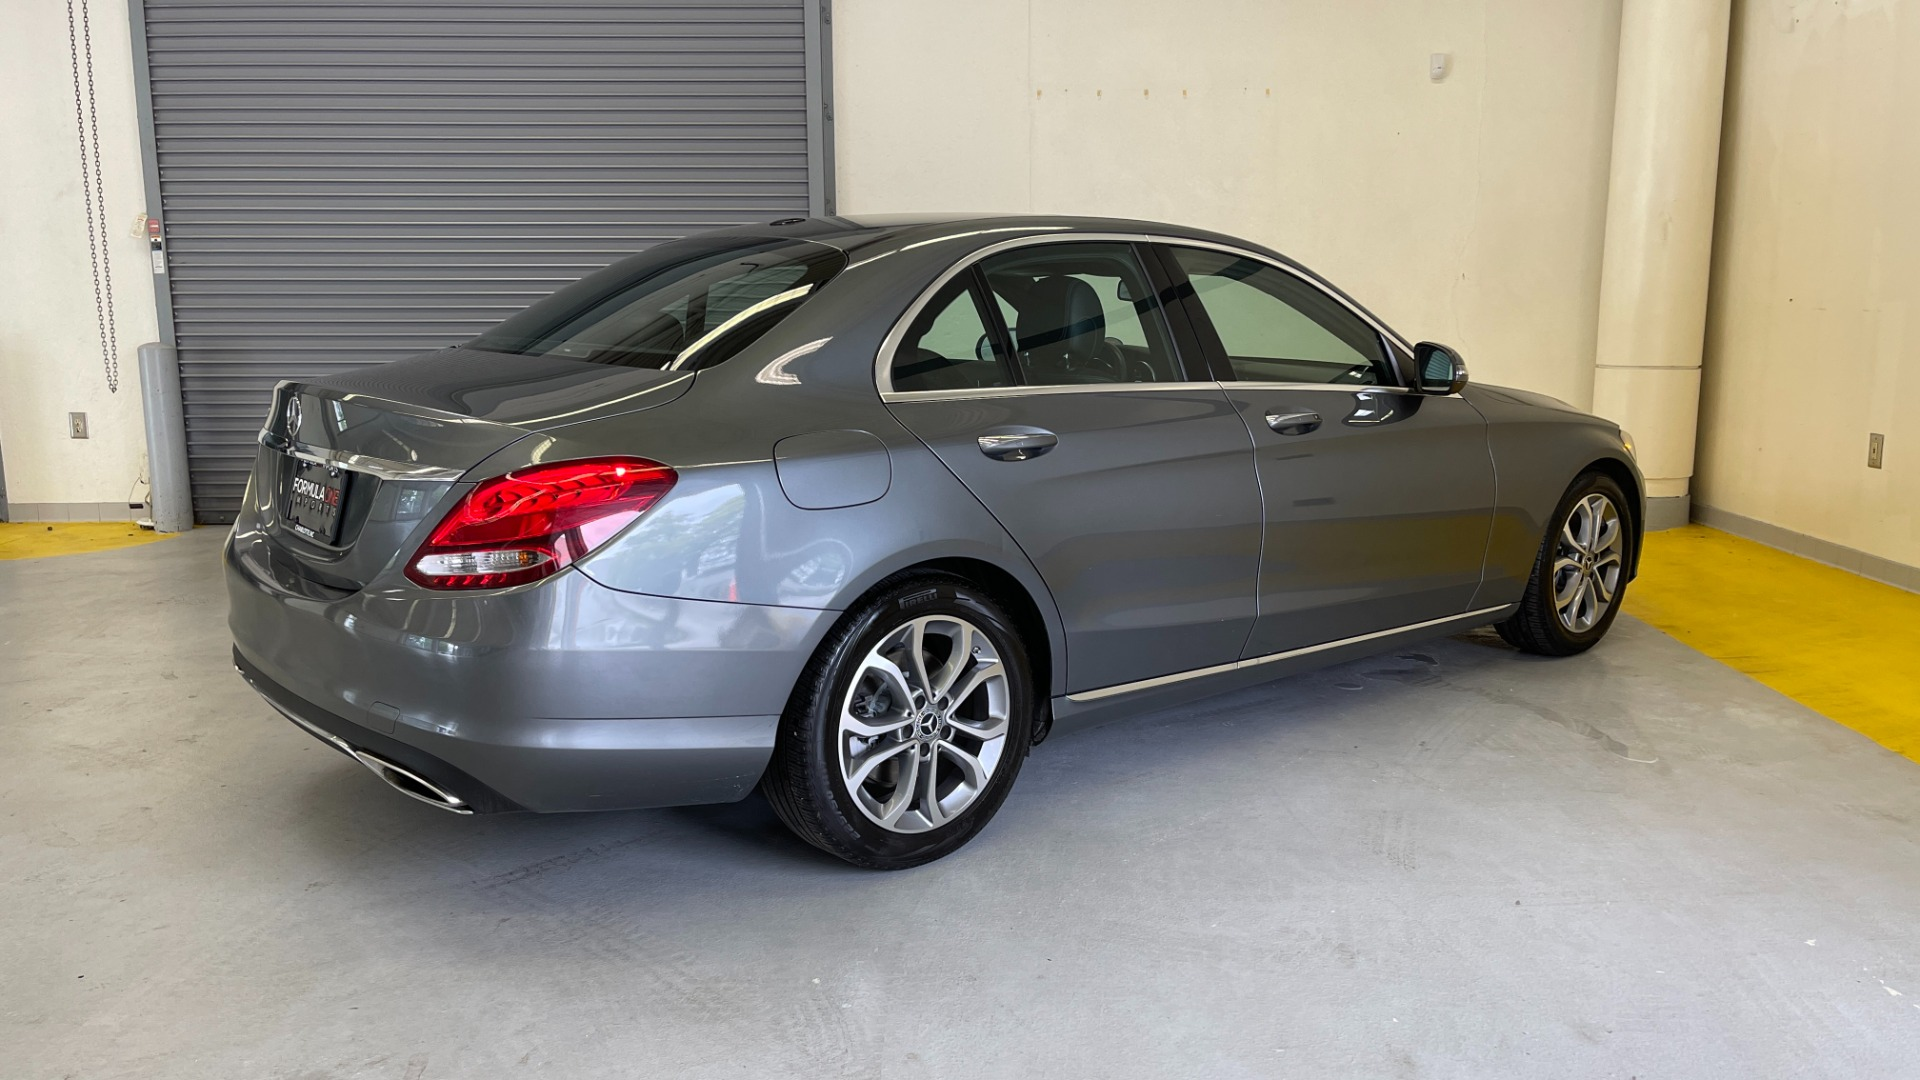 Used 2018 Mercedes-Benz C-CLASS C 300 PREMIUM / SUNROOF / APPLE CARPLAY / HTD STS / REARVIEW for sale $31,795 at Formula Imports in Charlotte NC 28227 8